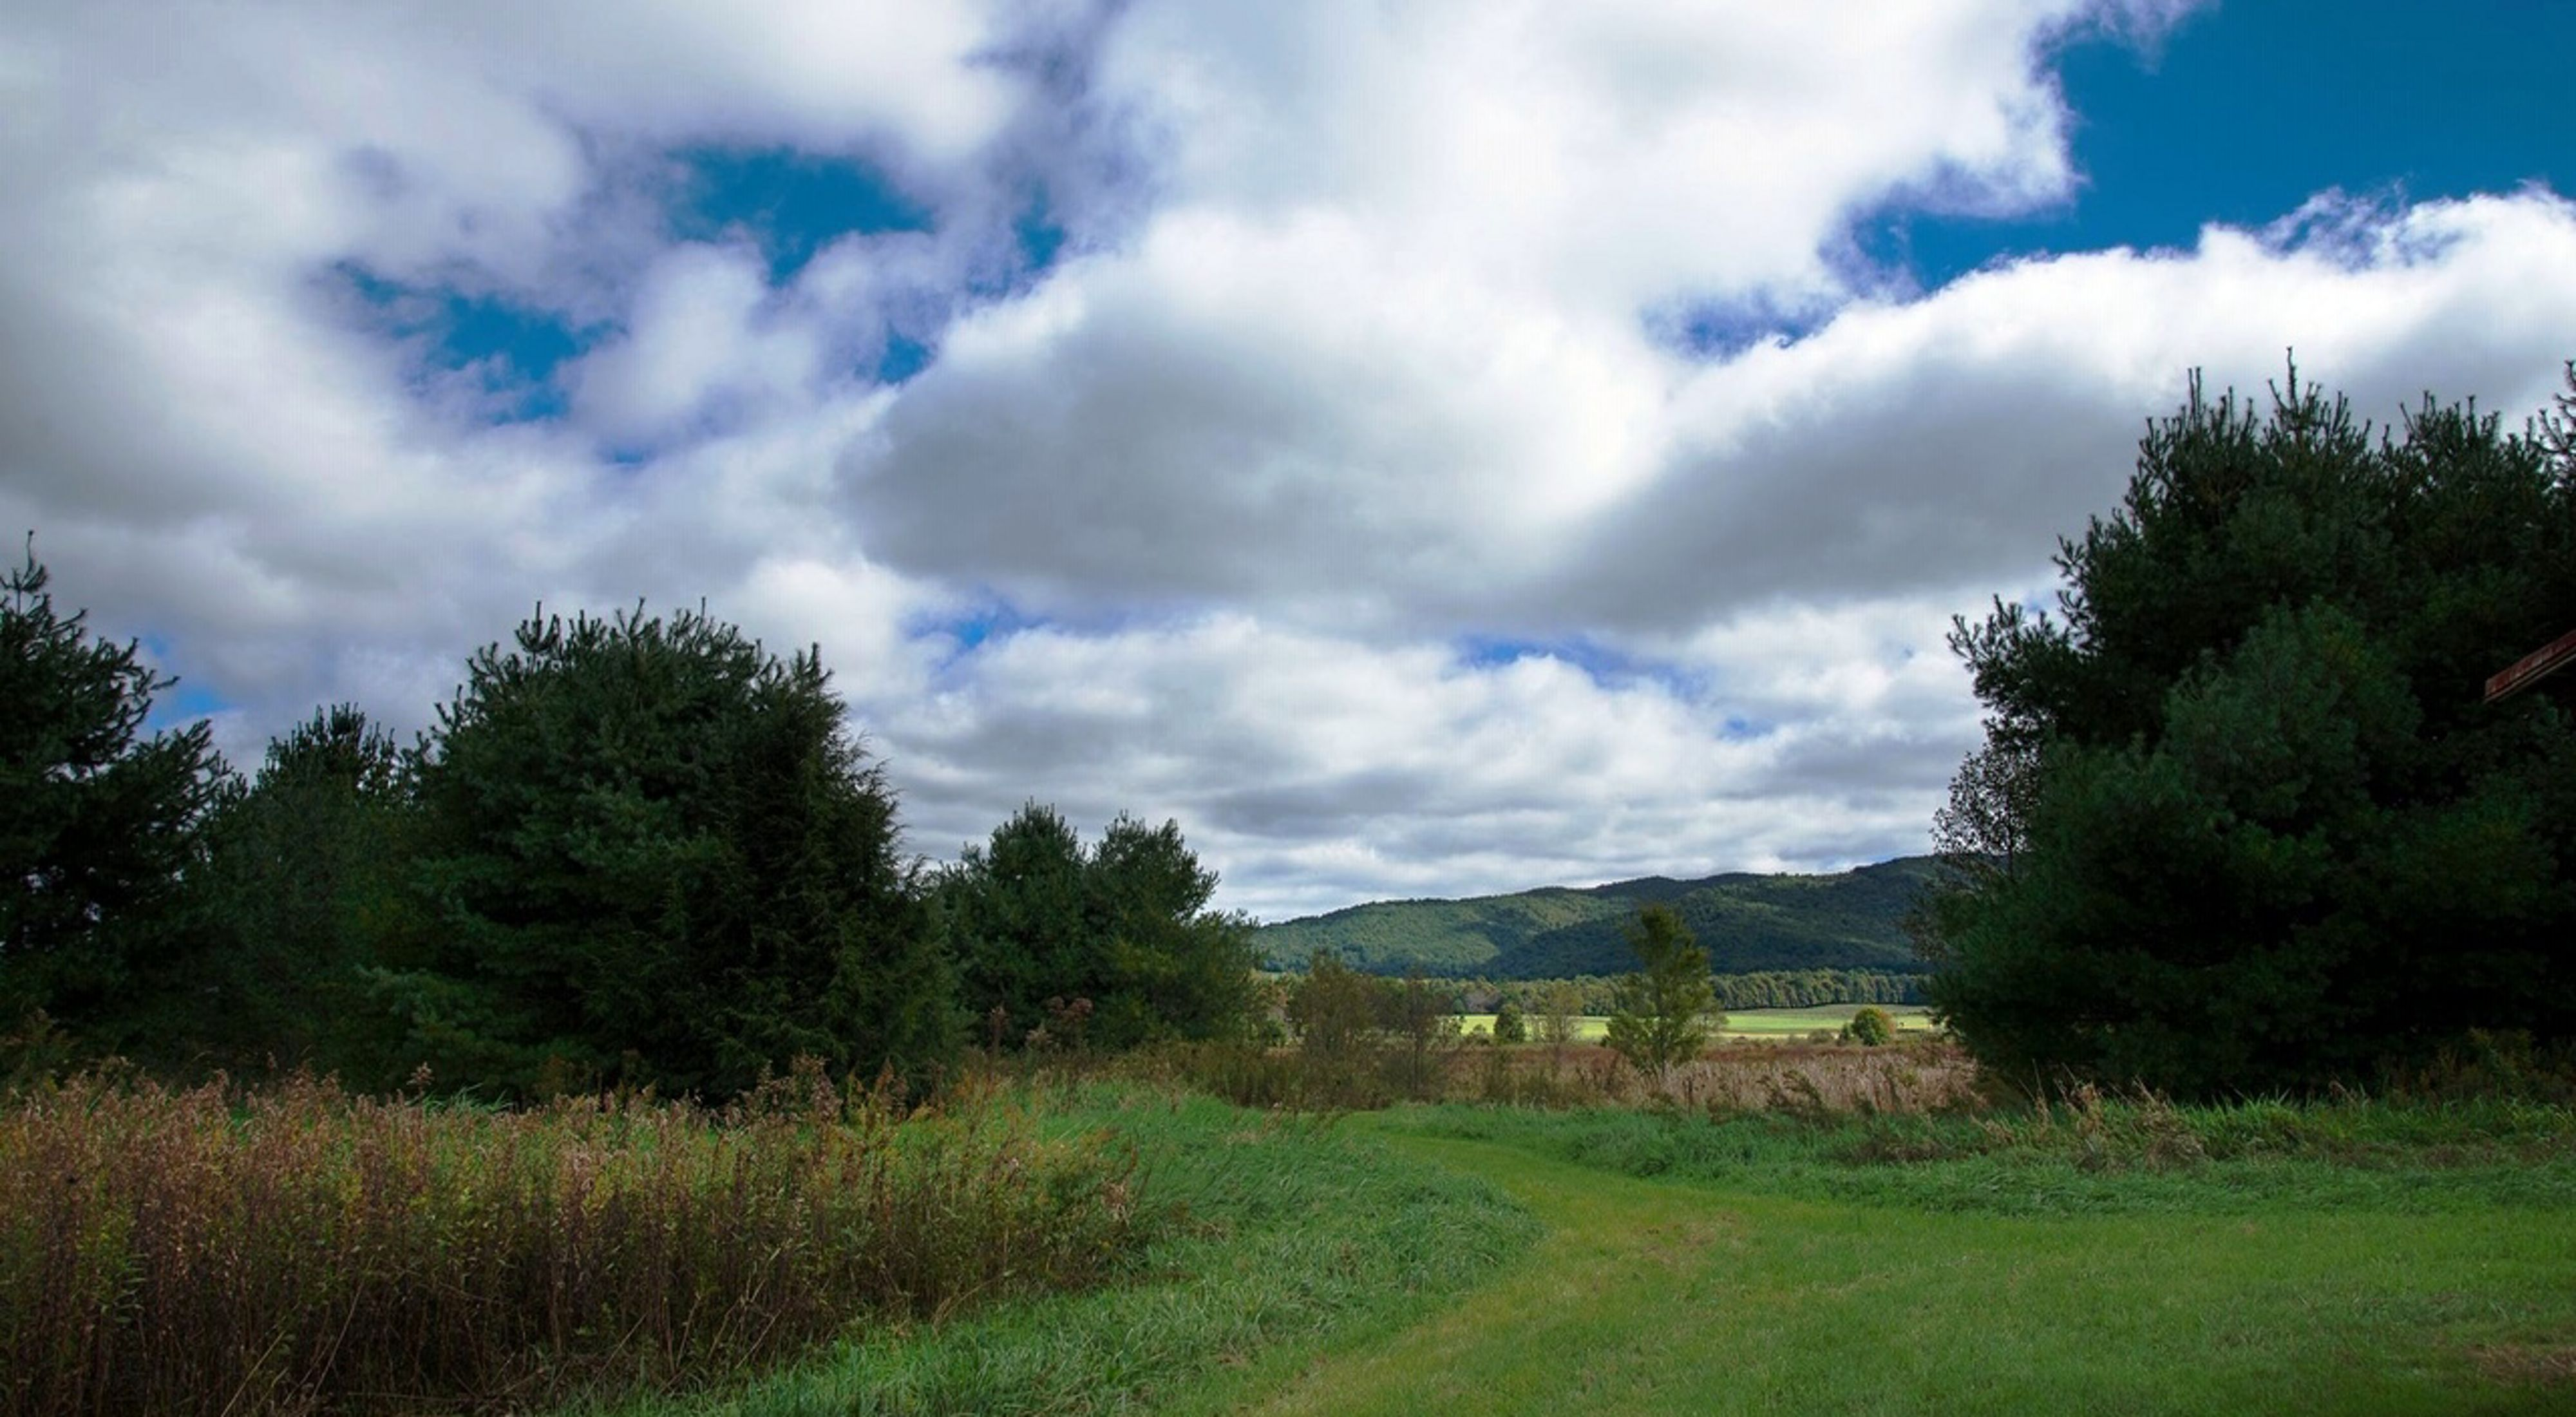 A panoramic view of a valley boasting a forest and a field.